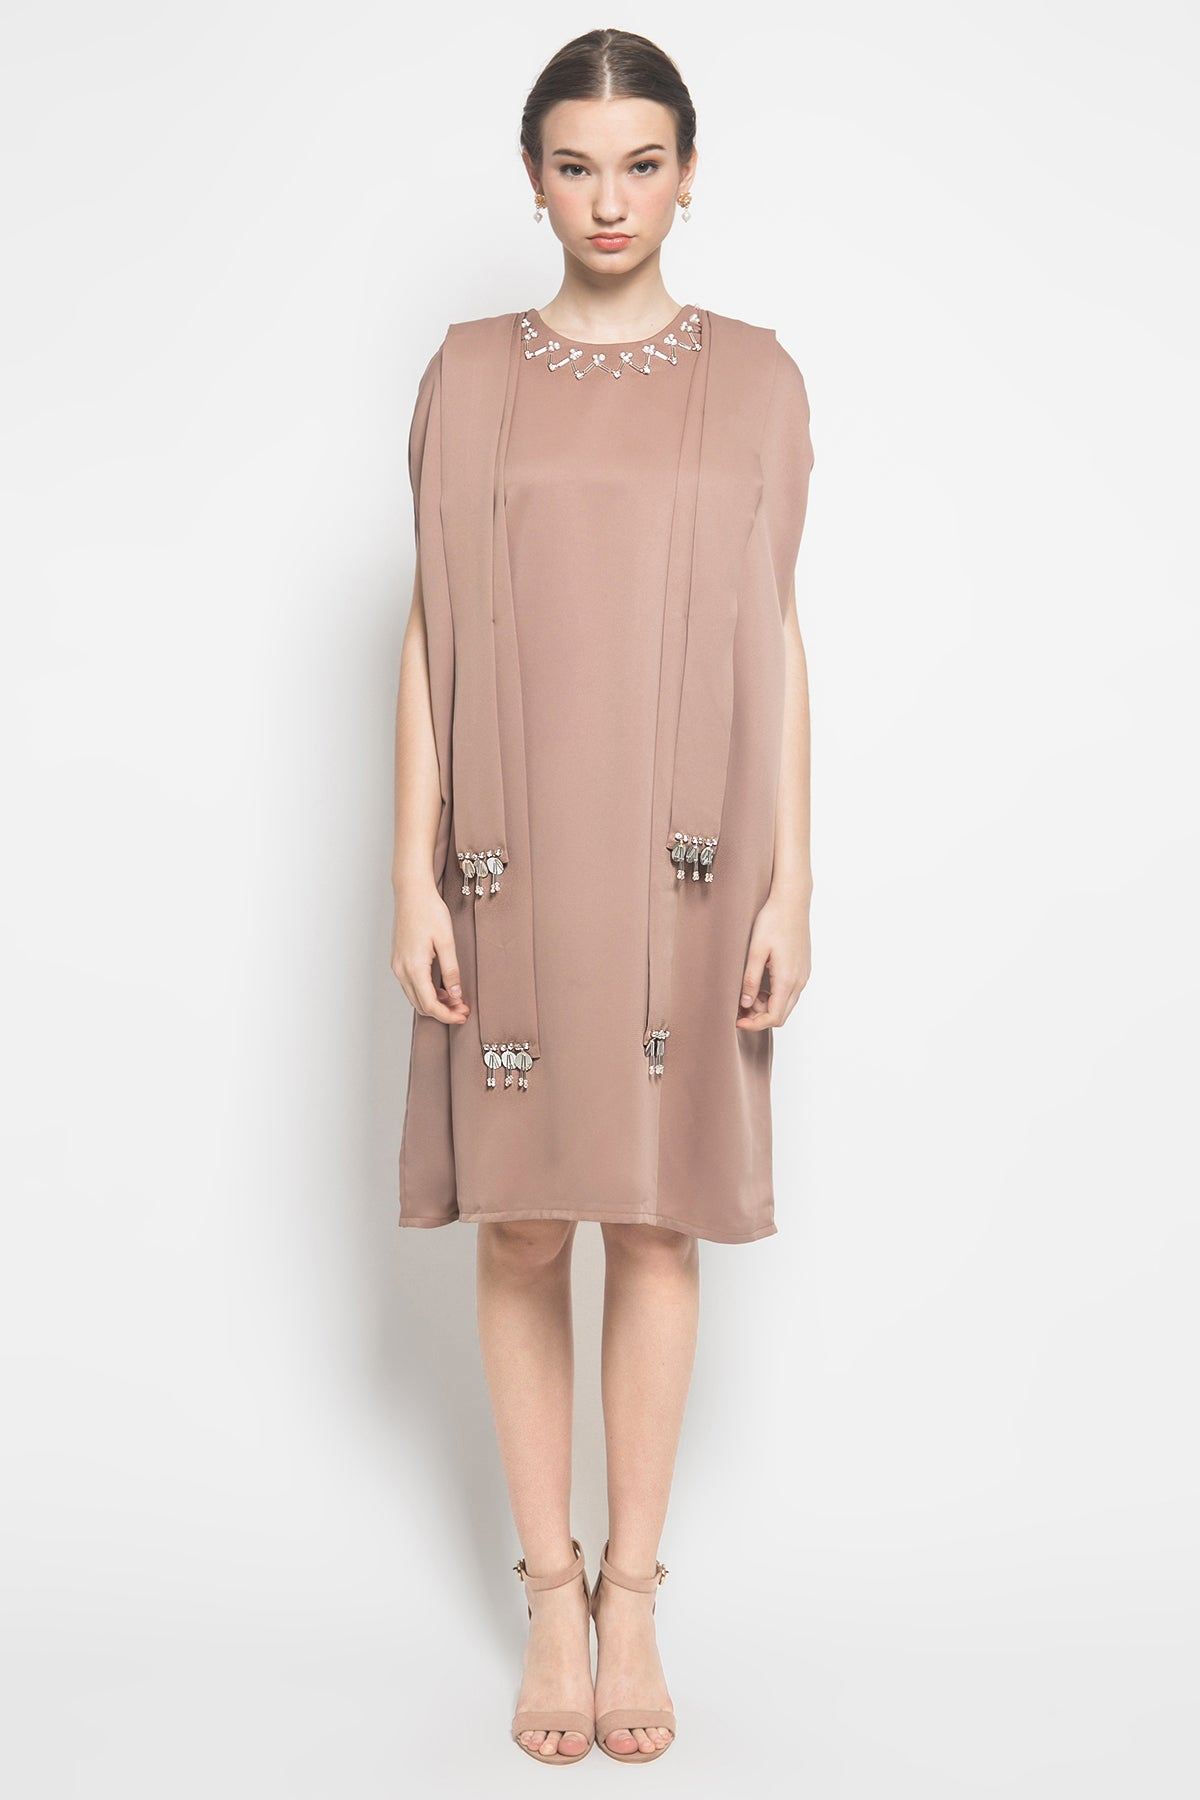 Esmé Giselle Dress in Taupe